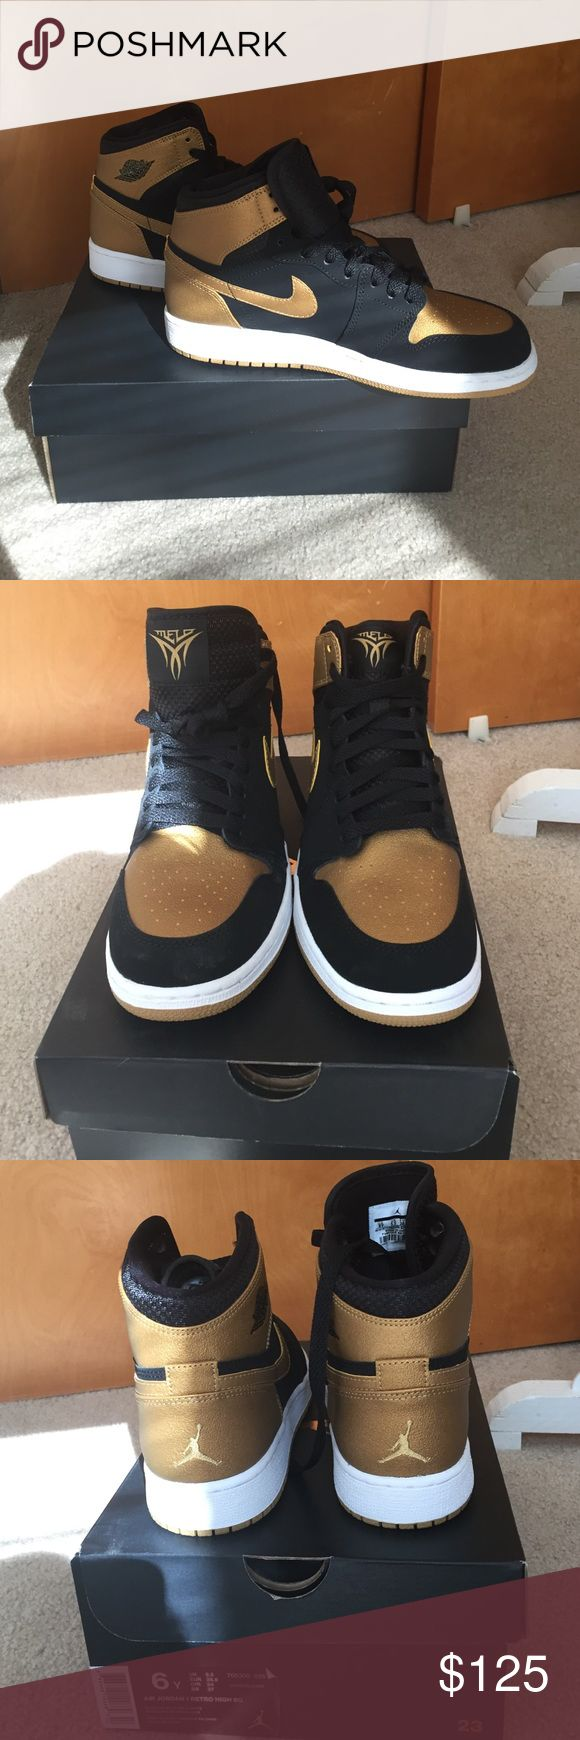 Air Jordan 1 Retro High Melo Nike BNIB BNIB women's size 7 Air Jordan 1 Retro. Black with gold colorway. Never Worn! Sad to see these babies go! Nike Shoes Athletic Shoes